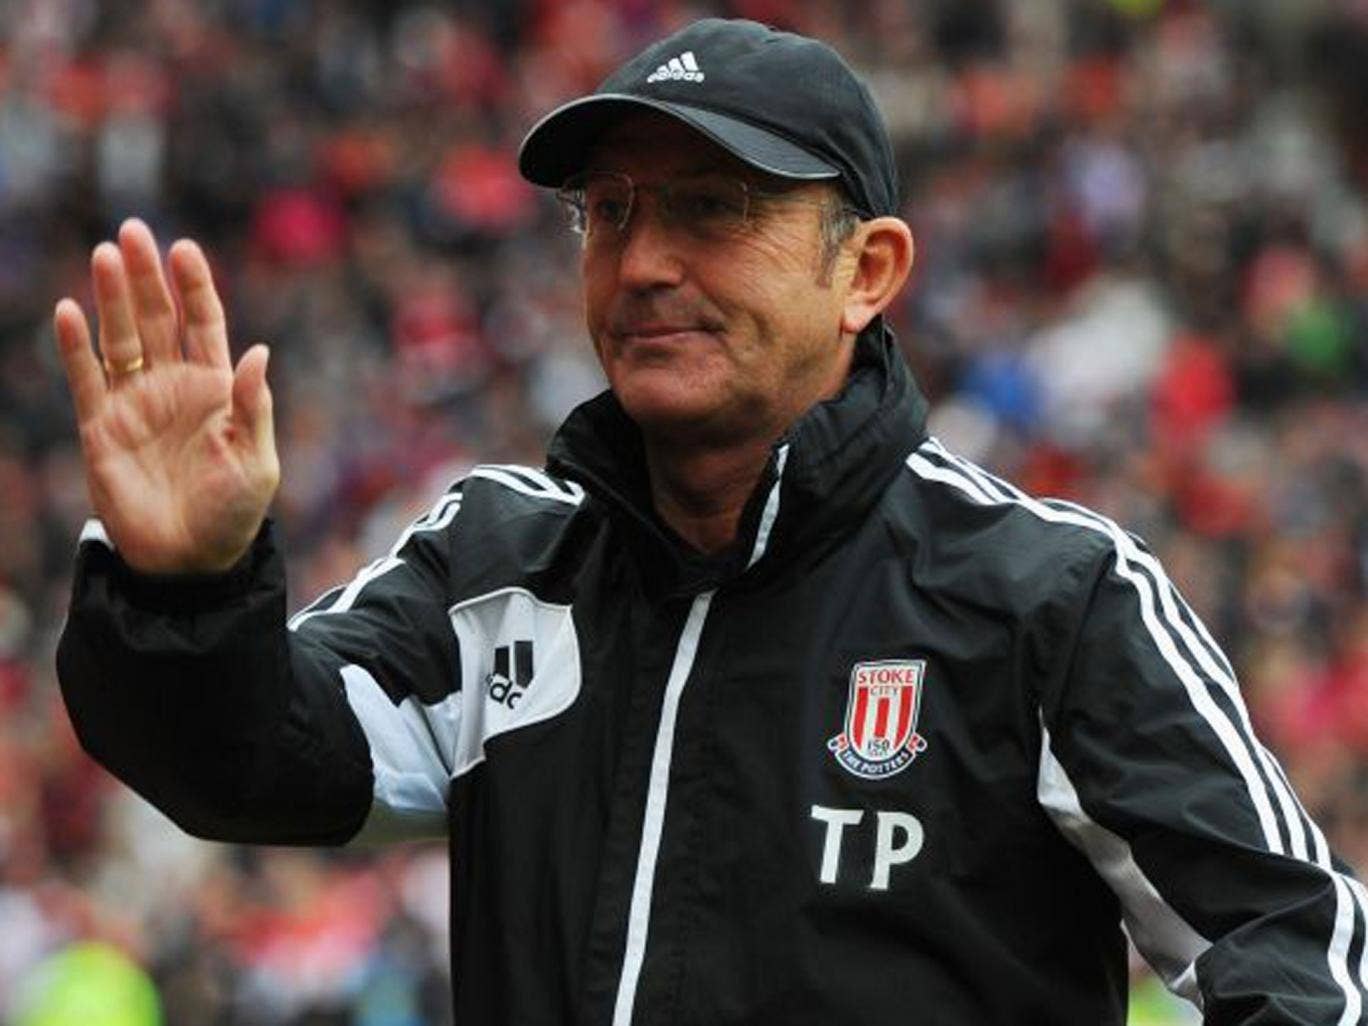 Tony Pulis' long-ball tactics have produced results, but at what cost?